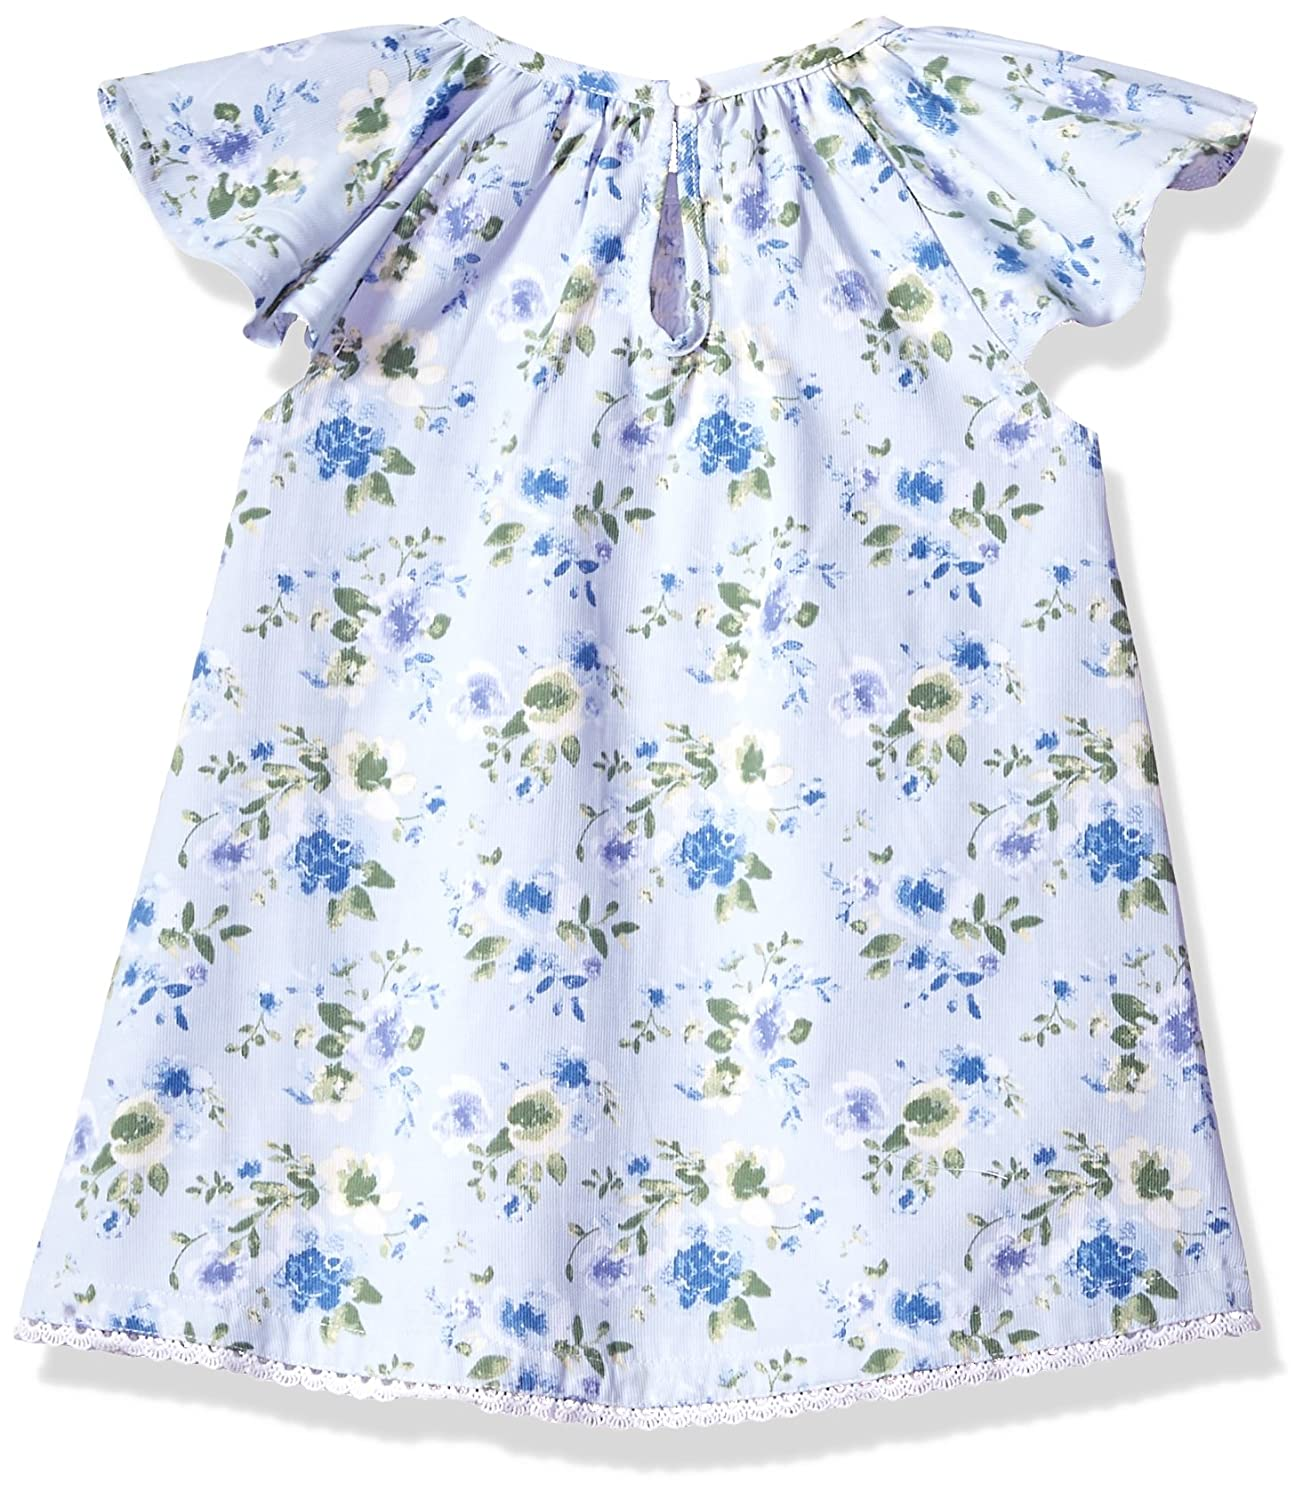 9a21d01cbd2 Amazon.com  Mud Pie Baby Girls Floral Smocked Flutter Sleeve Casual Dress  with Bloomers  Clothing